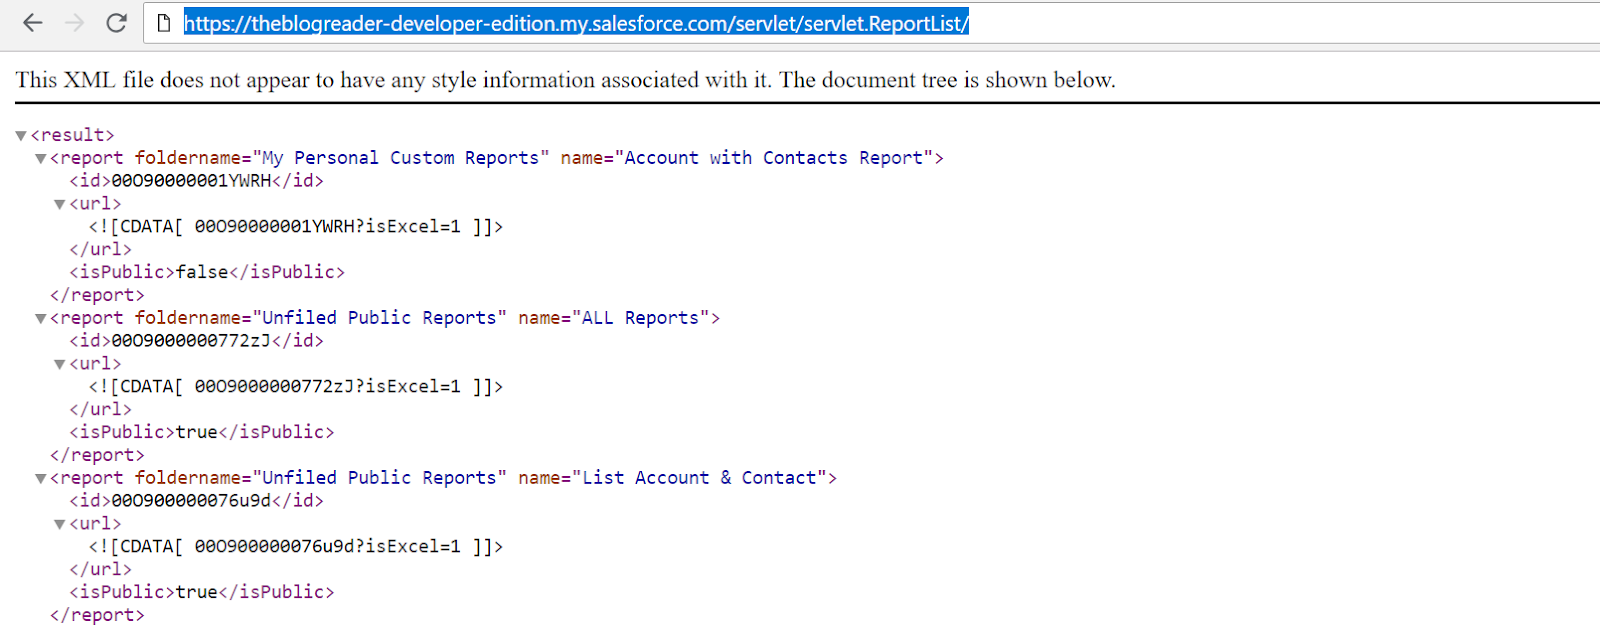 Salesforce Report List Using XML Format - TheBlogReaders